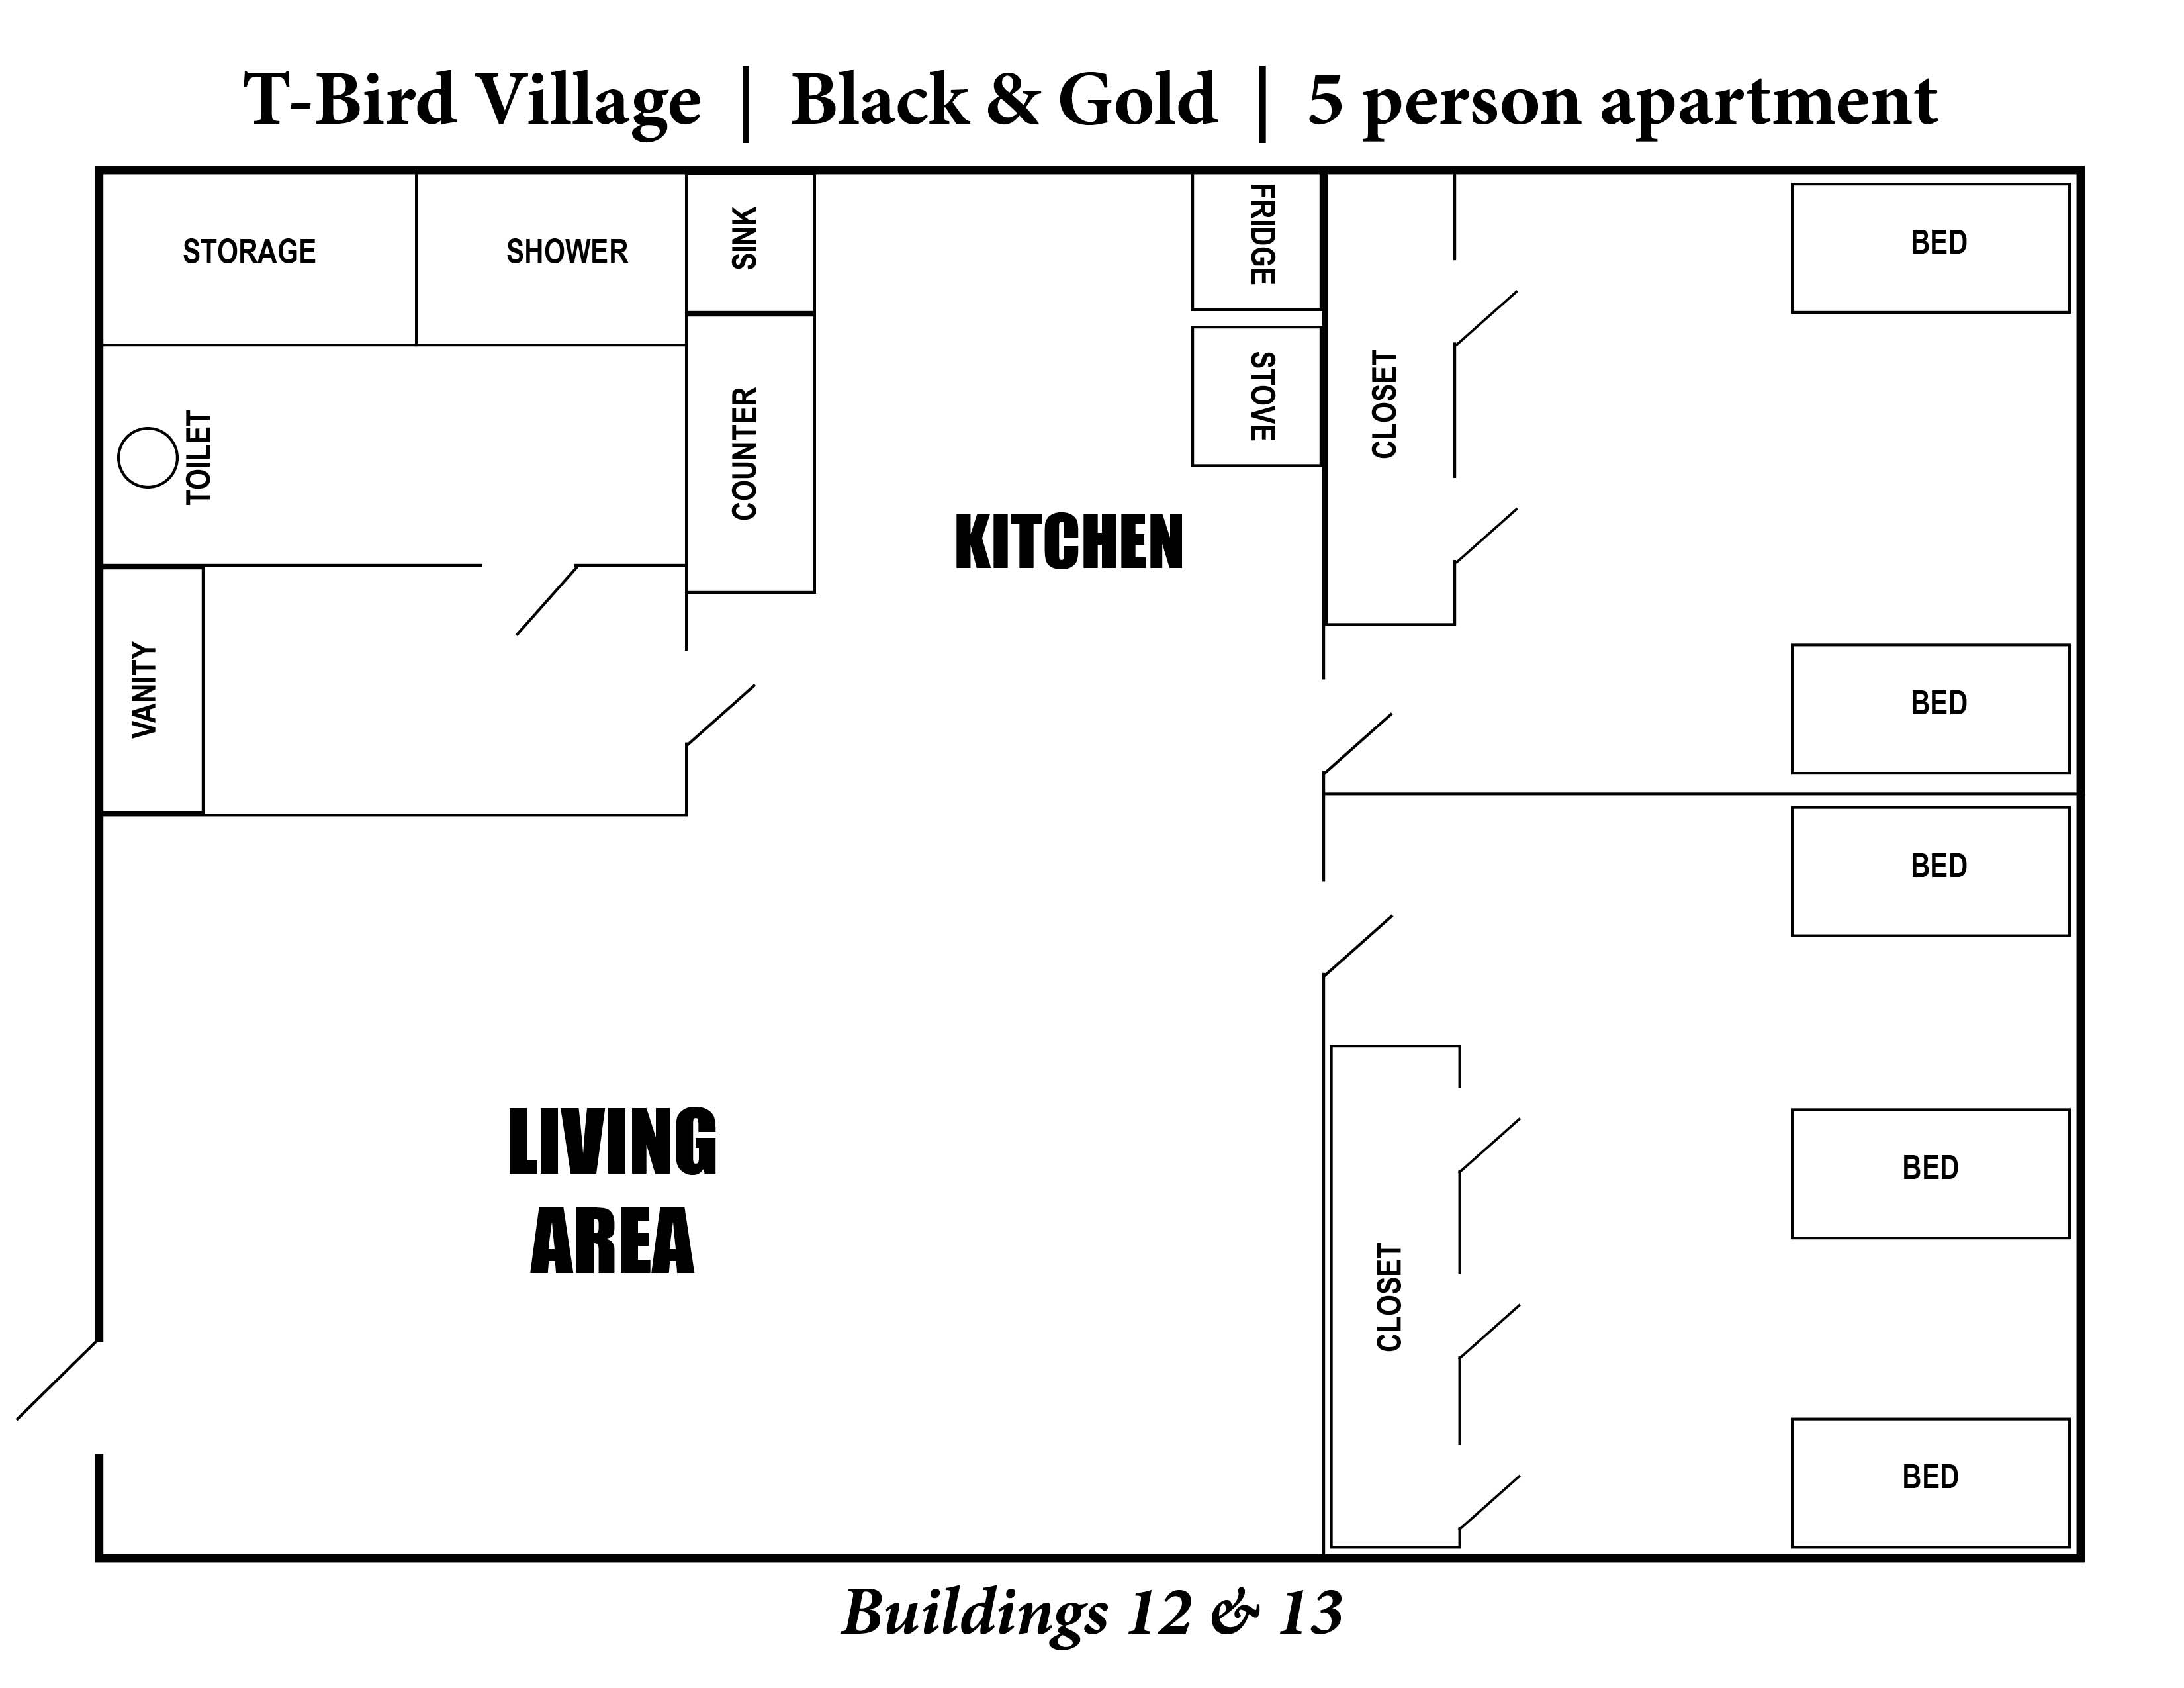 A photo of the layout of T-Bird Village 5 person apartment.